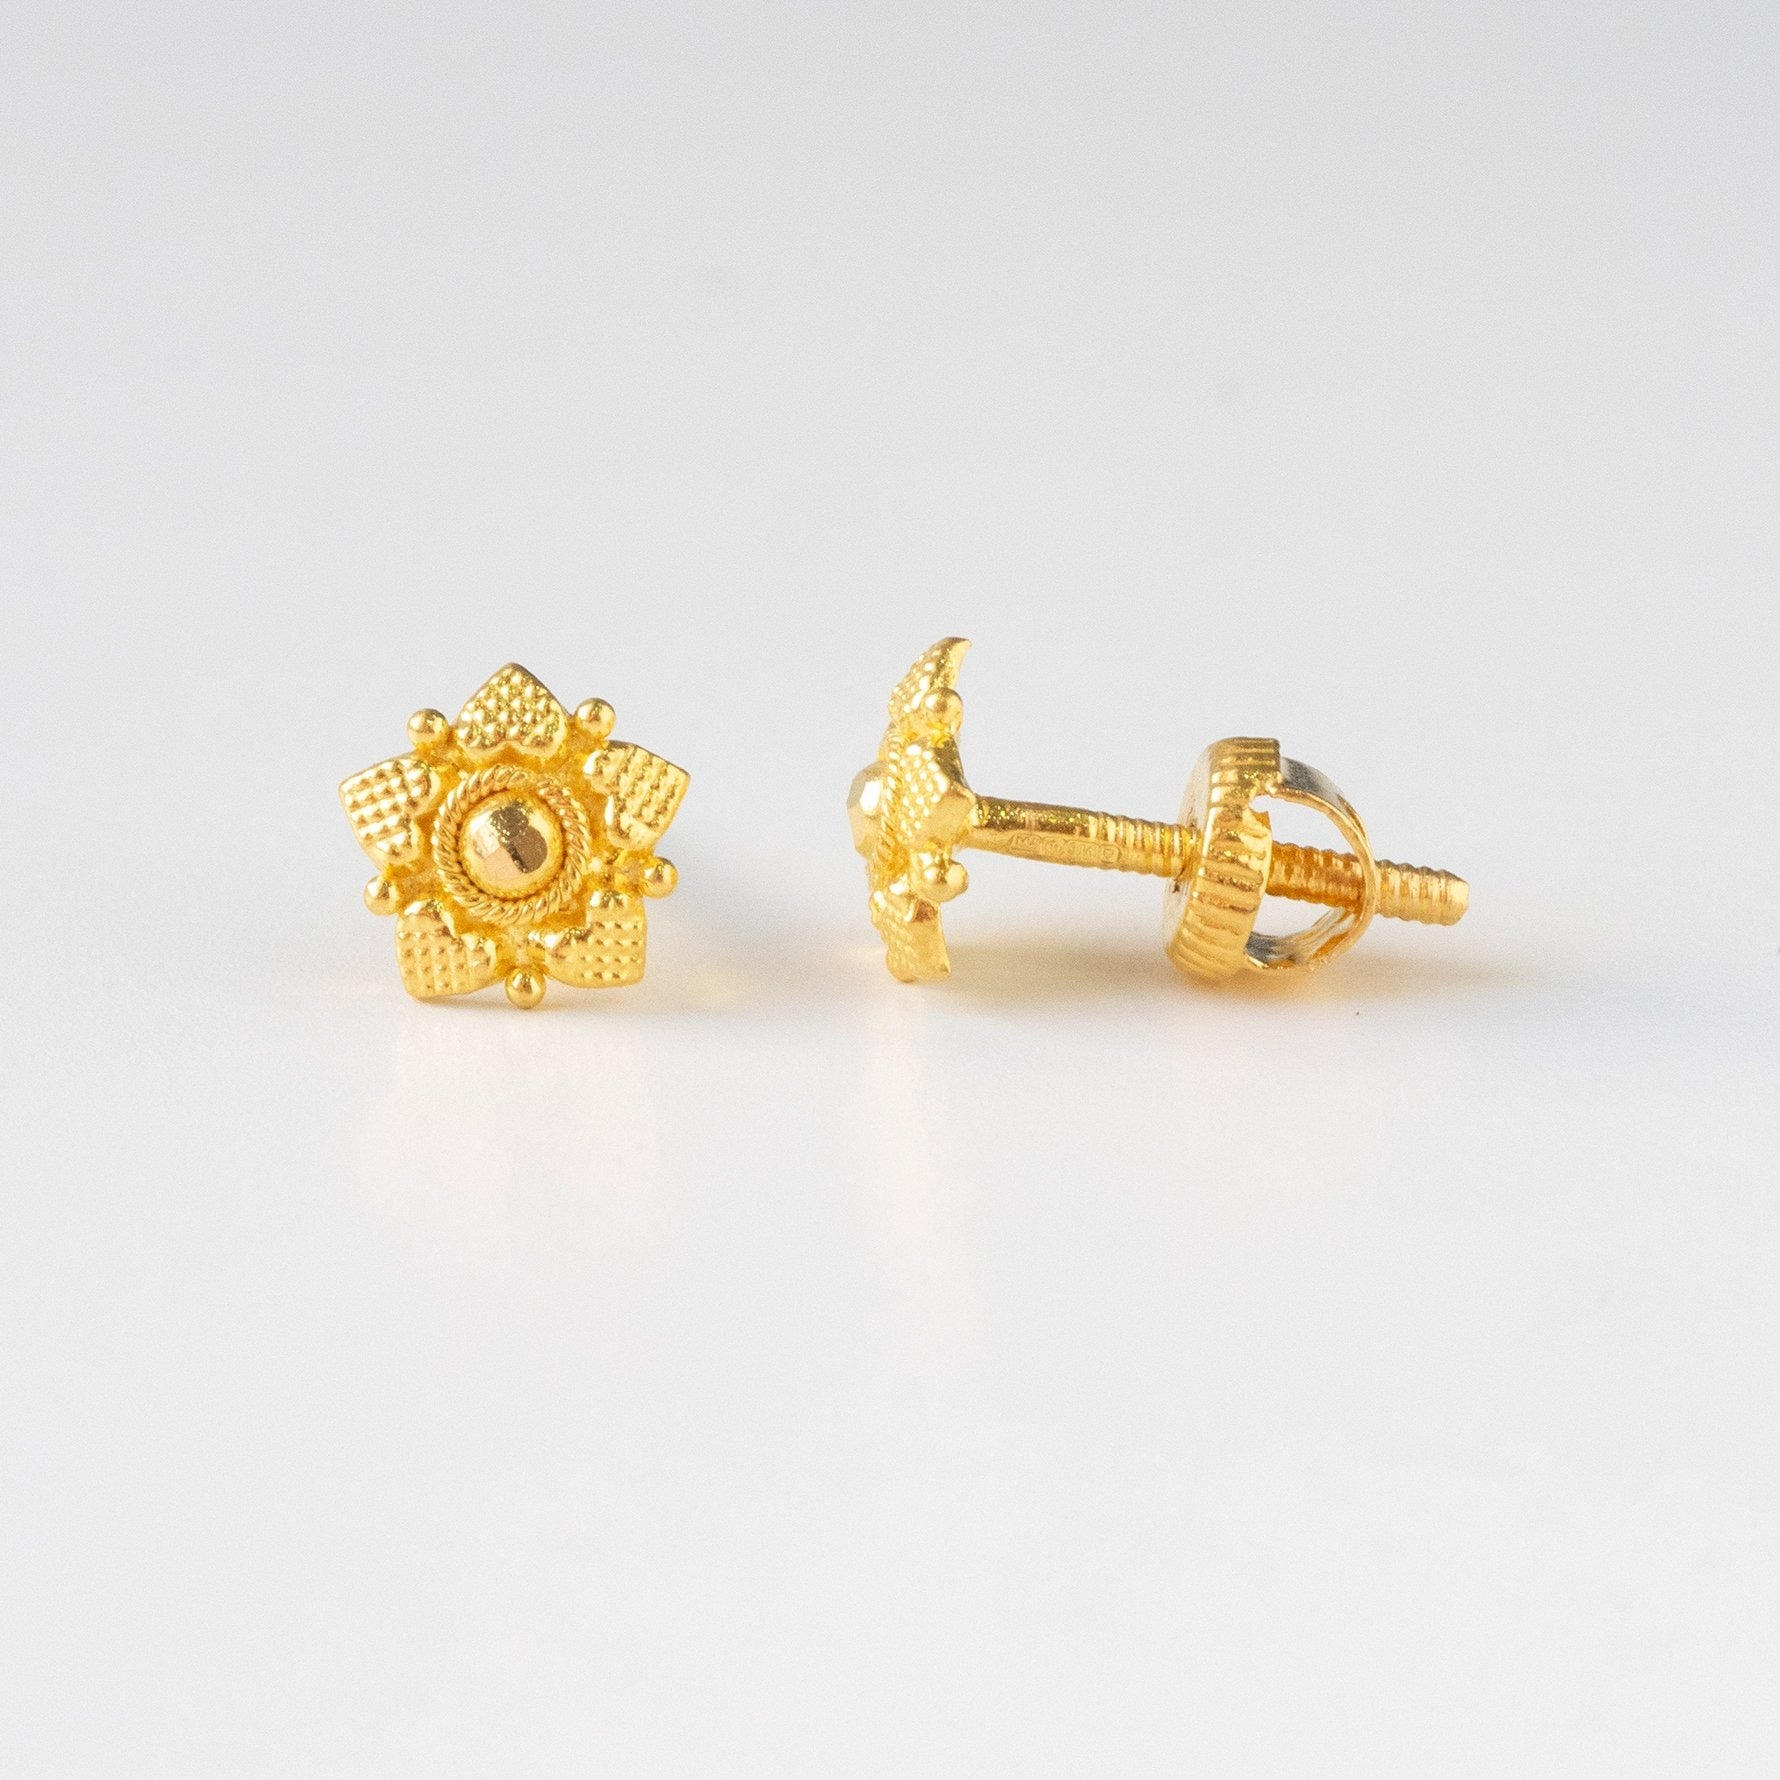 22ct Gold Diamond Cut Ear Studs (1.2g) E-7774